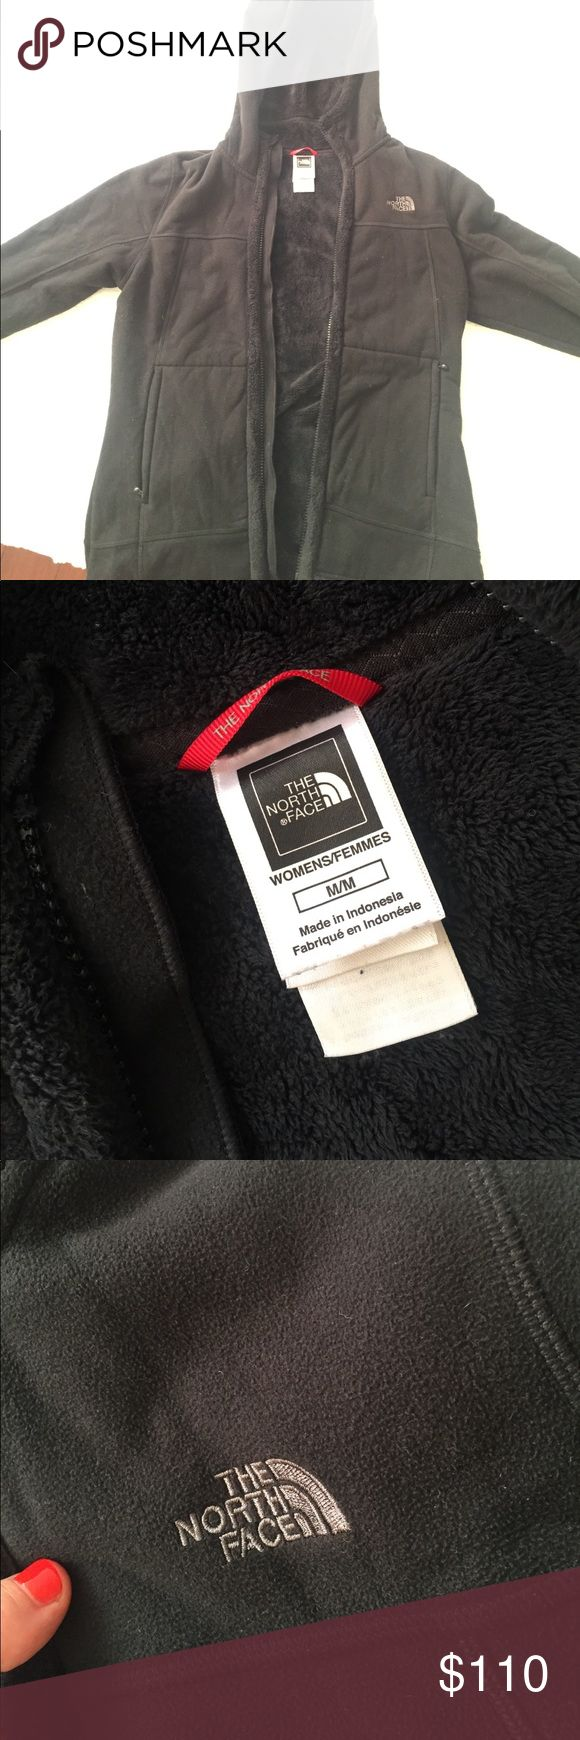 The North face zip up cozy sweatshirt Cozy, fleece lined hooded zip up sweat shirt from The North Face. Cozy and warm! Size medium! True to size The North Face Jackets & Coats